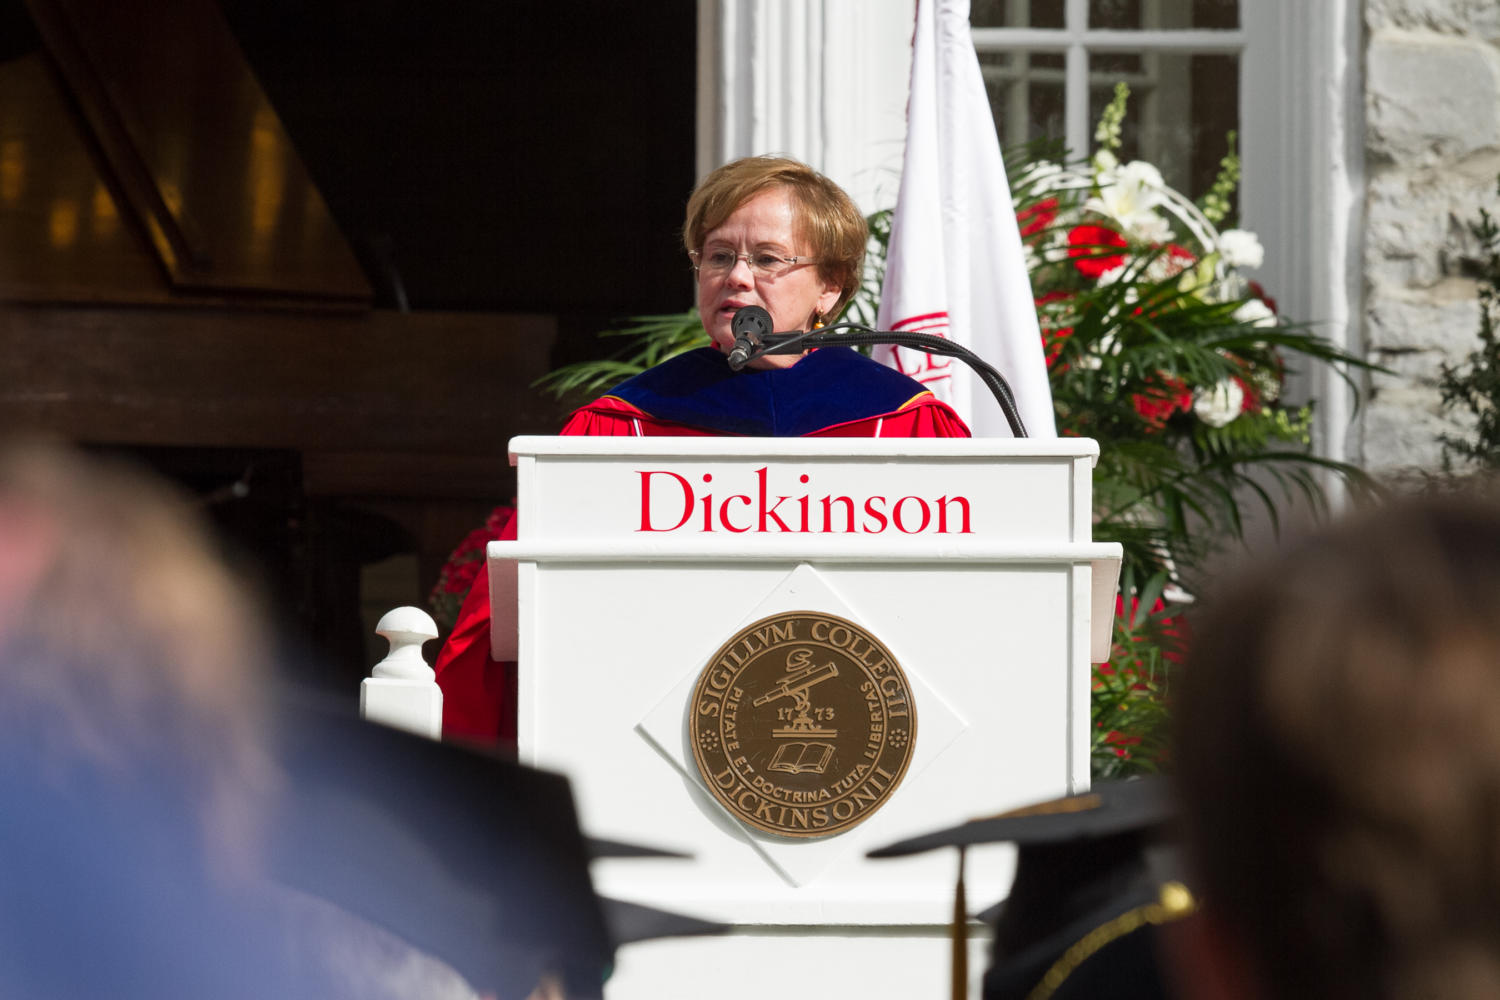 Margee Ensign, Dickinson's 29th President, was inauguarated over Parents' and Homecoming weekend after serving as president since July 1, 2017.